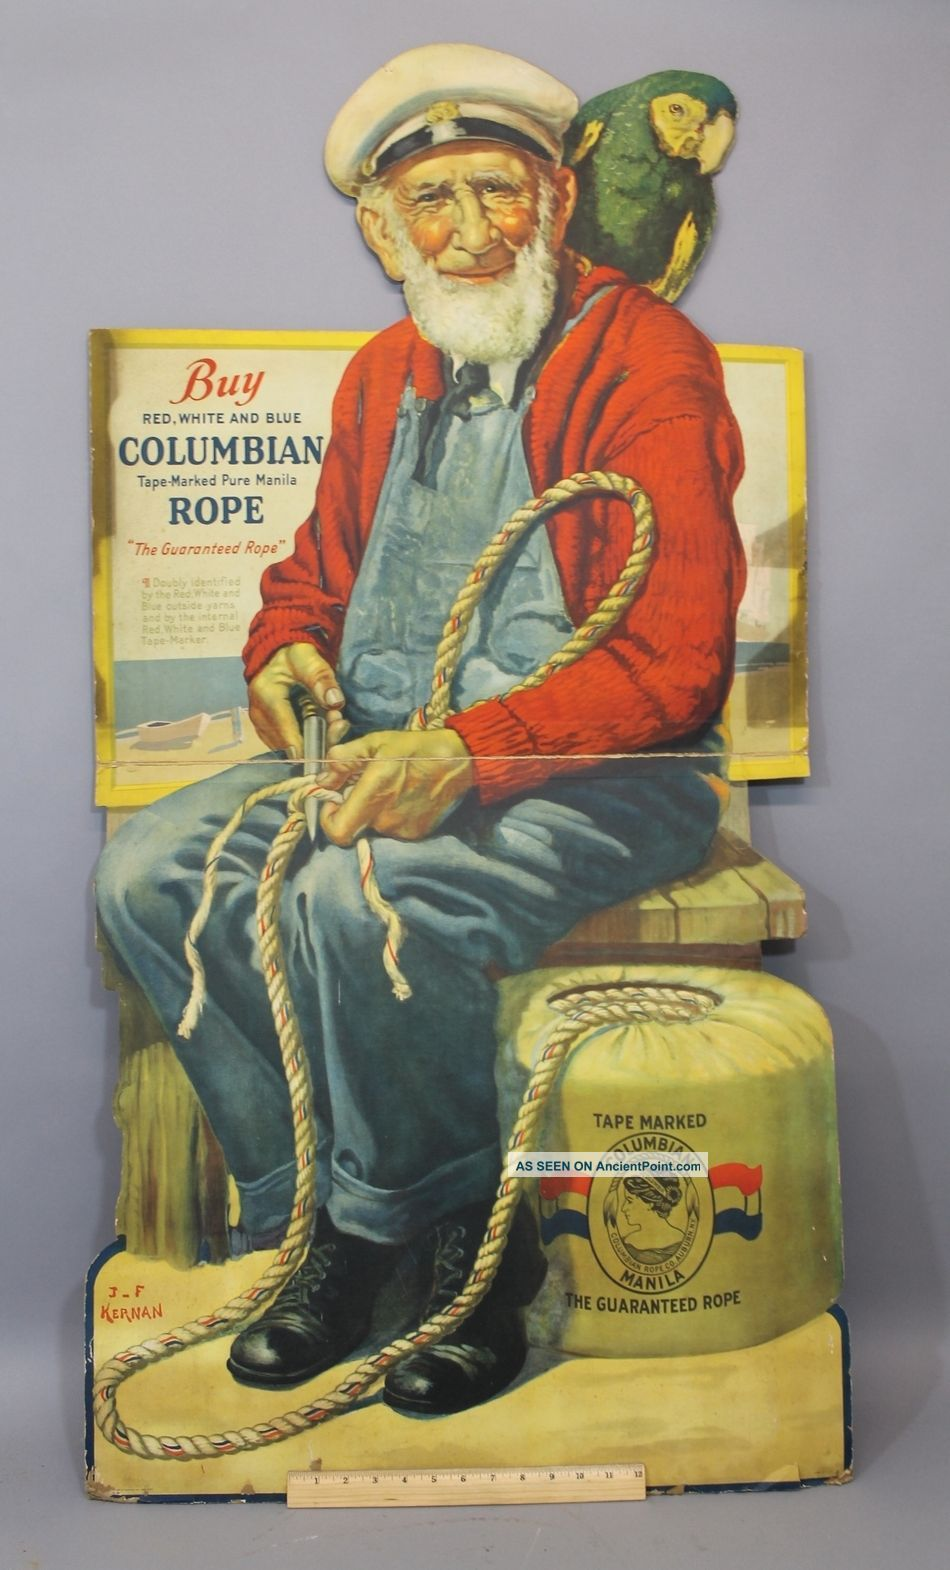 Vintage Litho Advertising Buy Columbian Rope Stand Up Folding Display Sign,  Nr Other Maritime Antiques photo